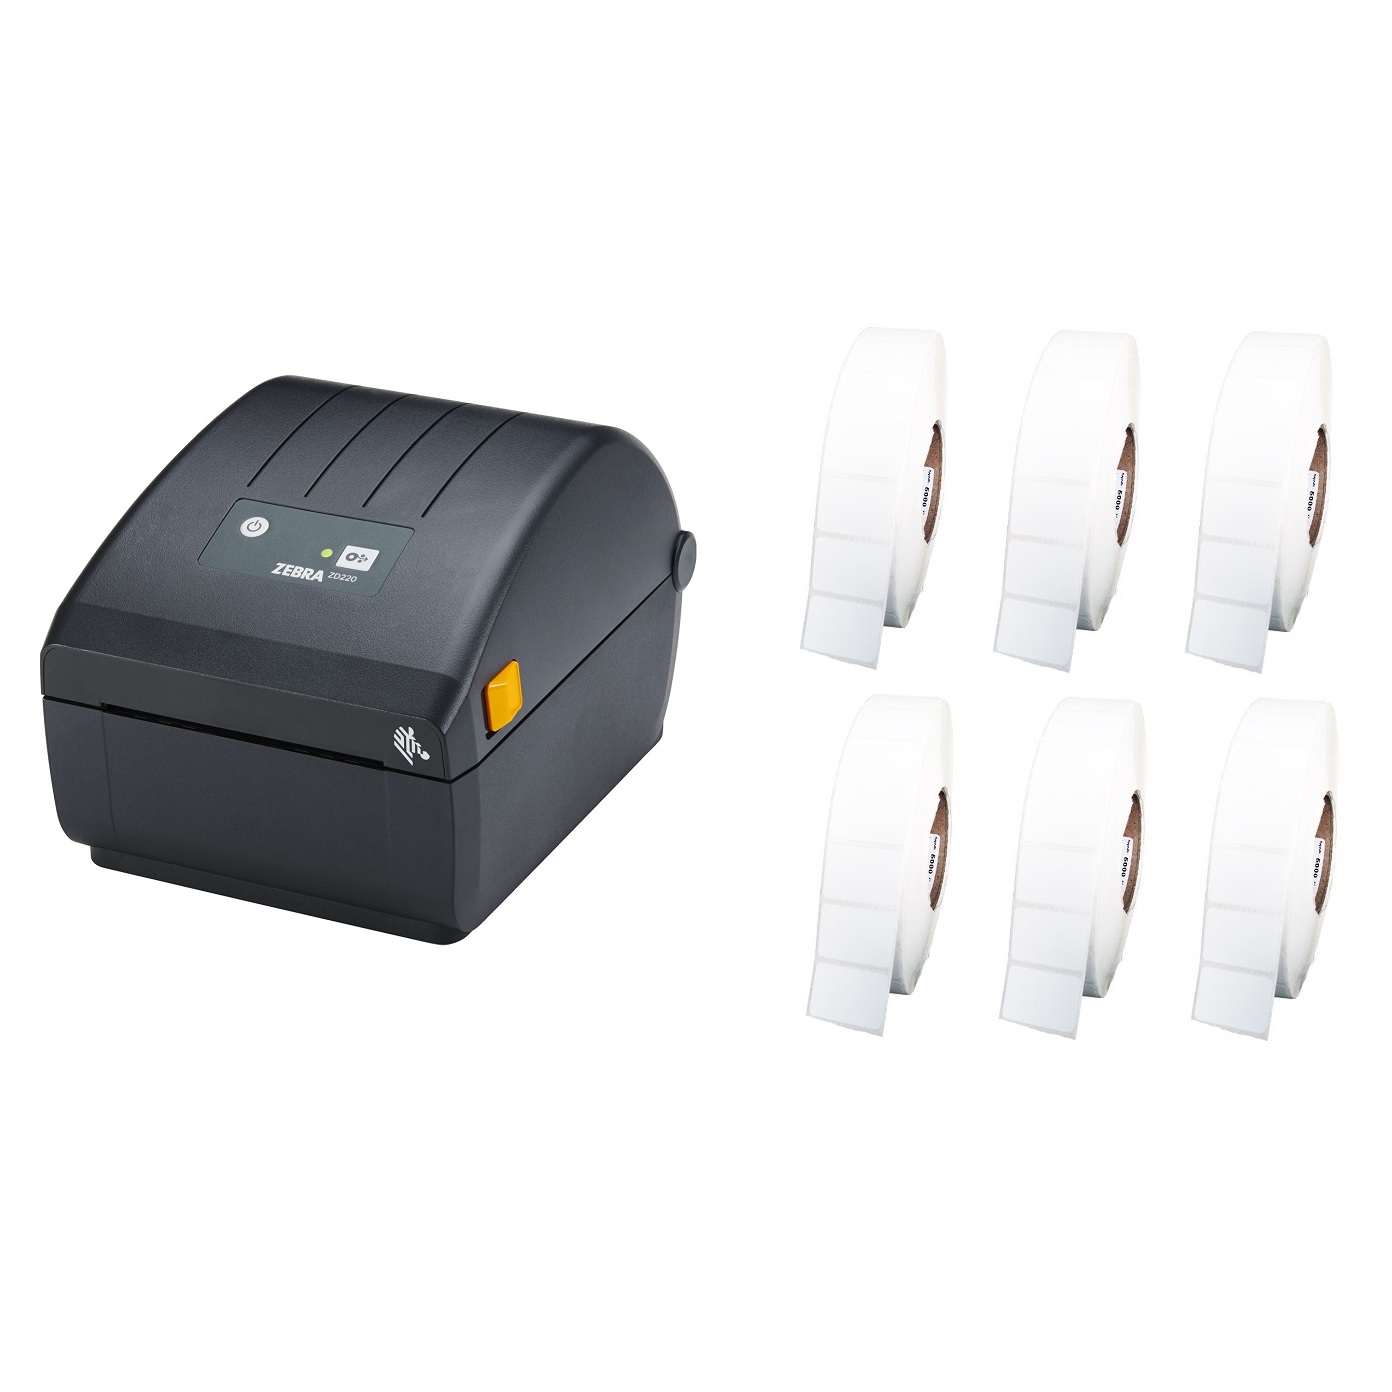 View Zebra ZD220 Label Printer + 50mm x 28mm Labels Bundle